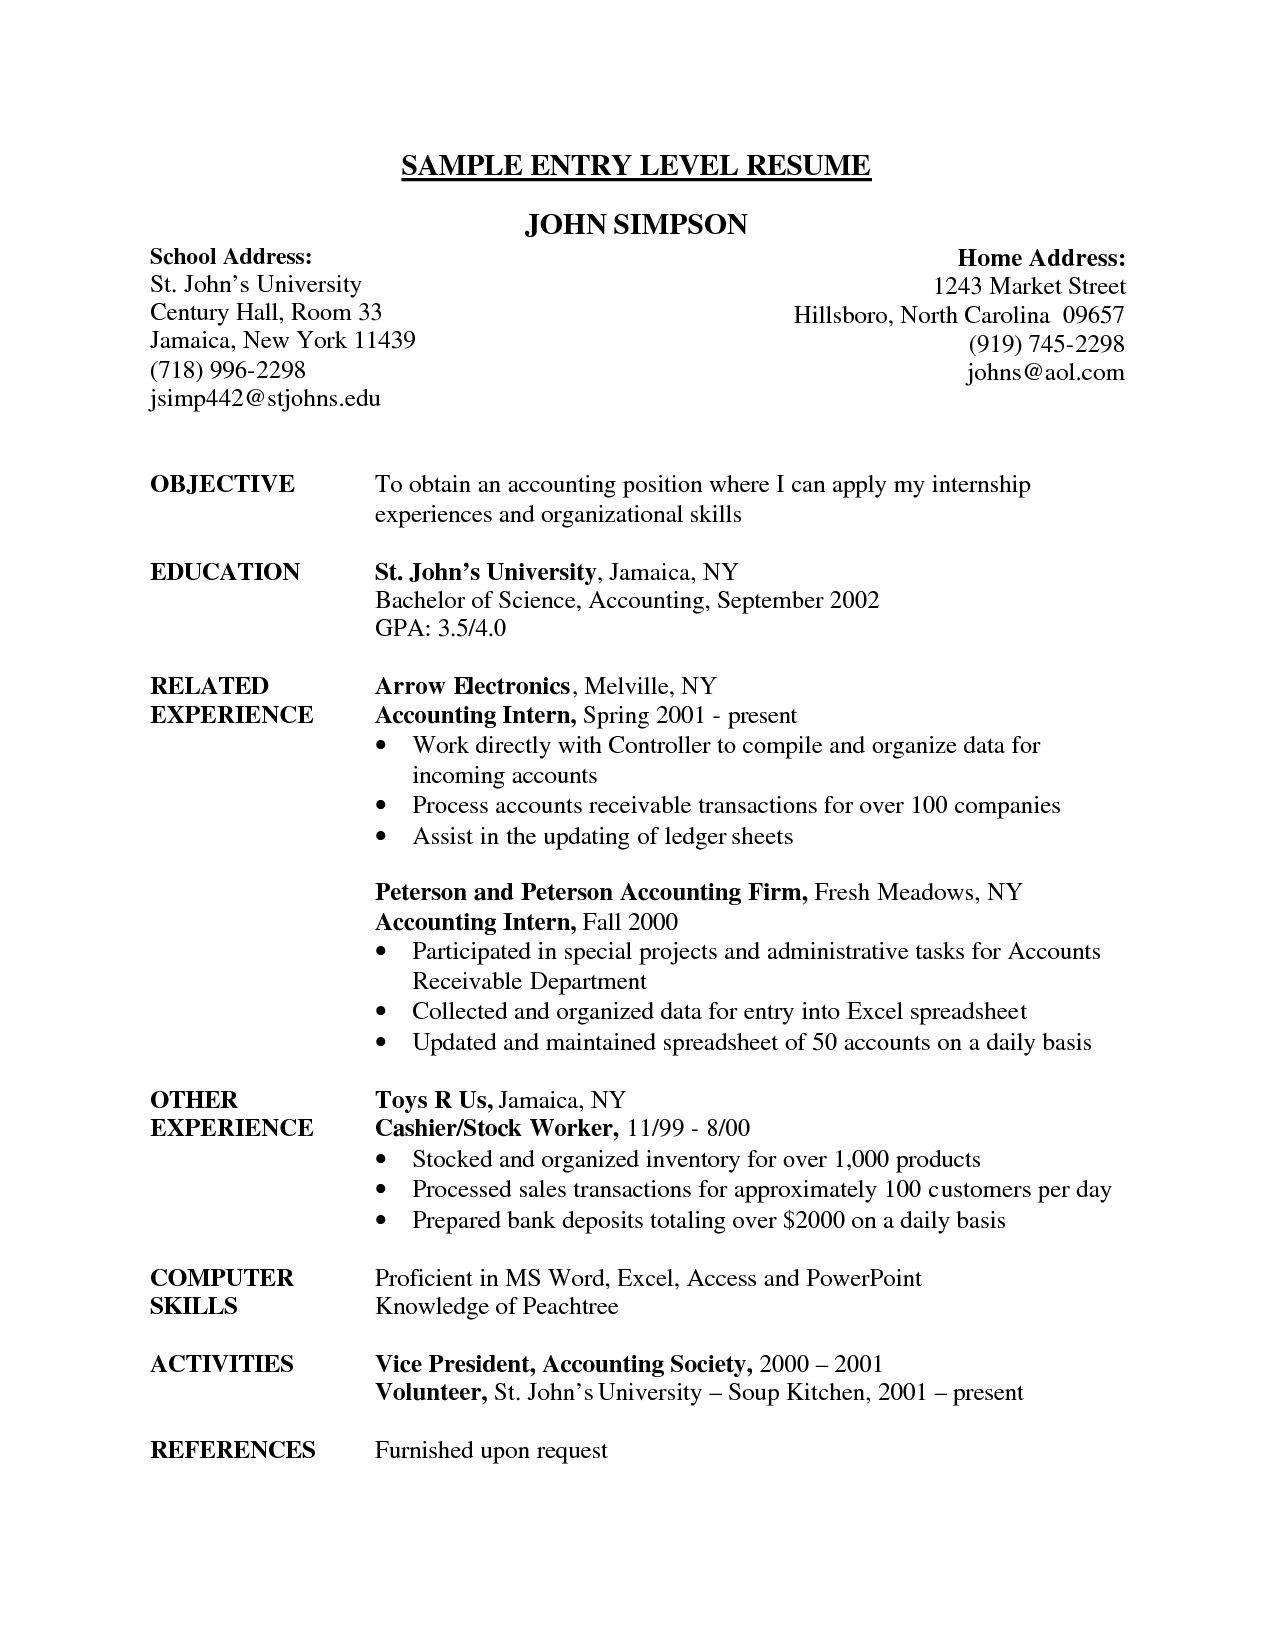 entry level resume example entry level job resume examples 26161fd4f resume pinterest